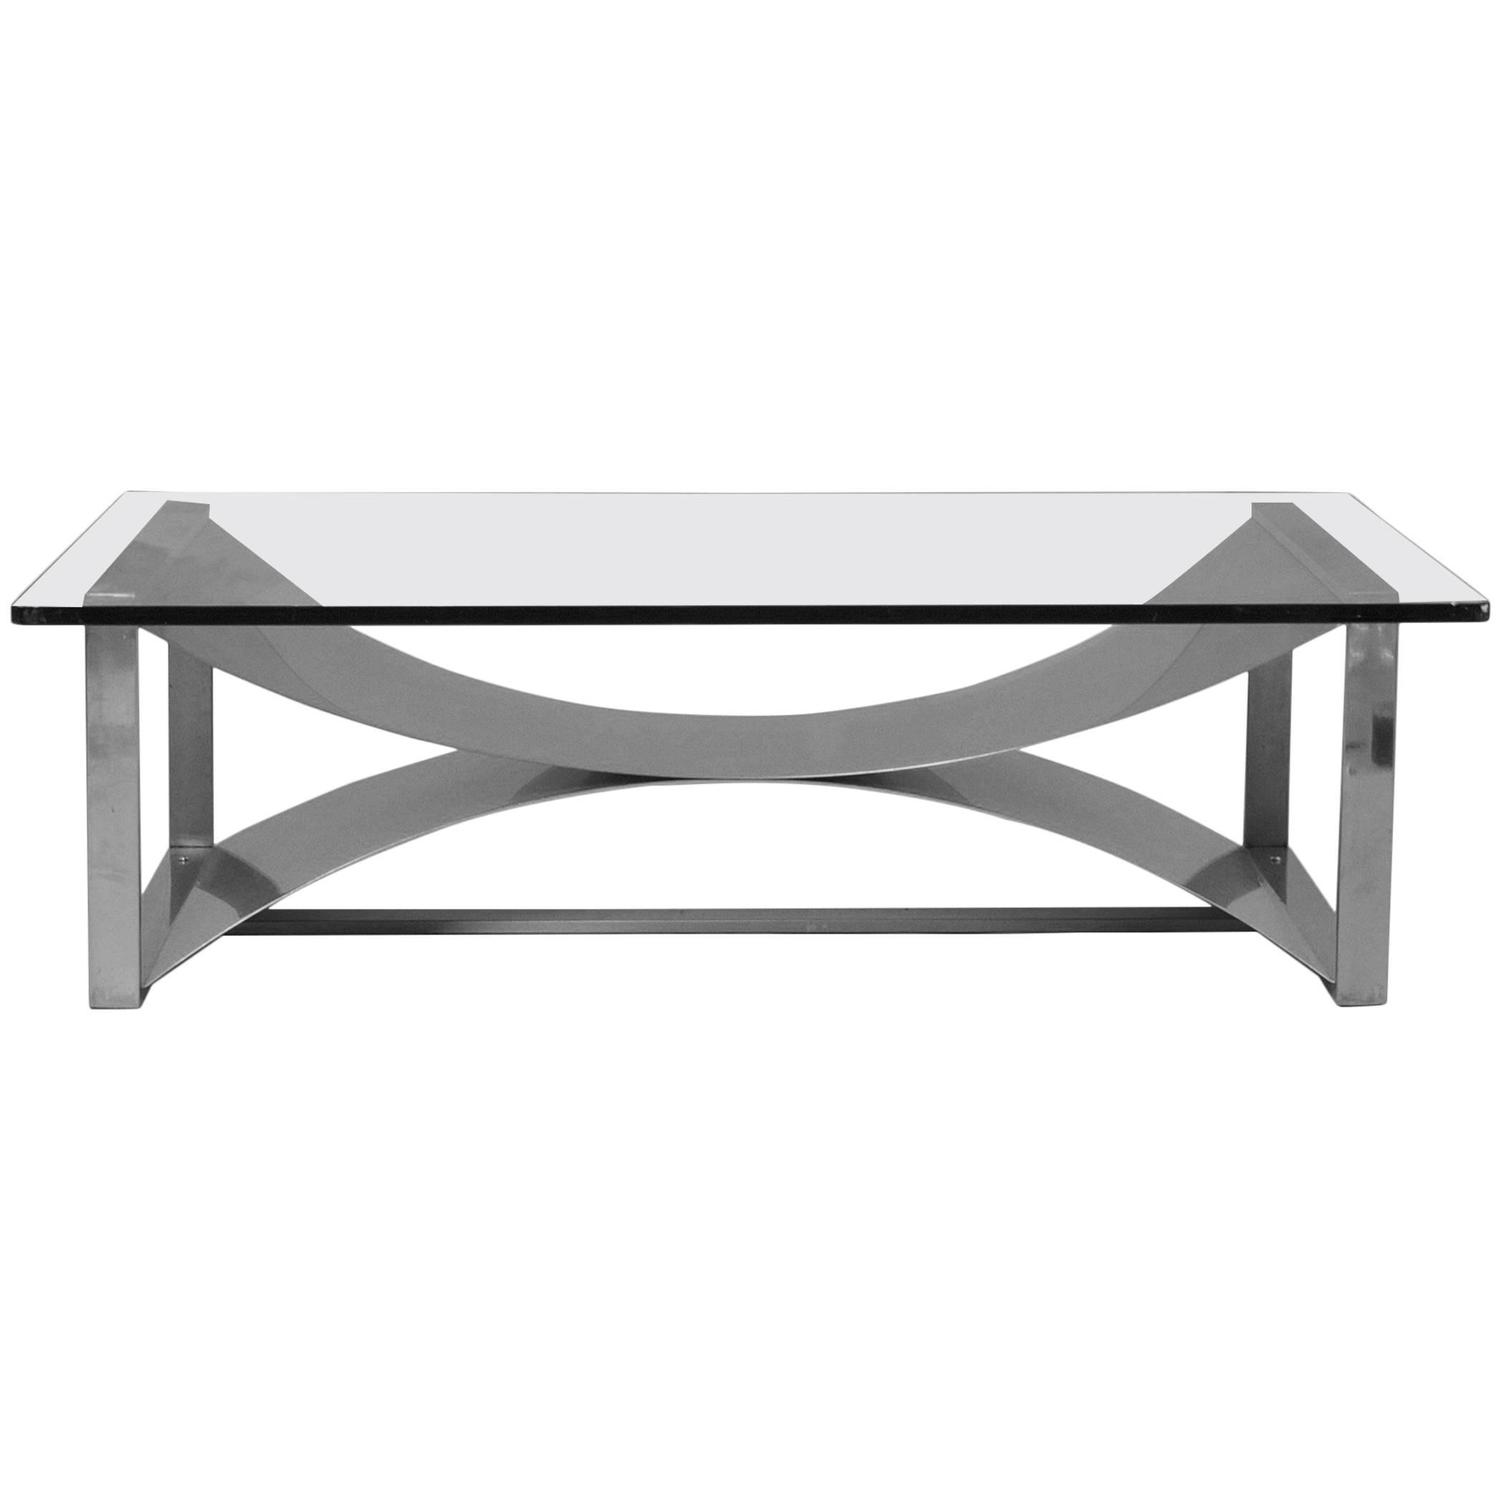 1970s Rectangular Glass And Polished Steel Coffee Table At 1stdibs